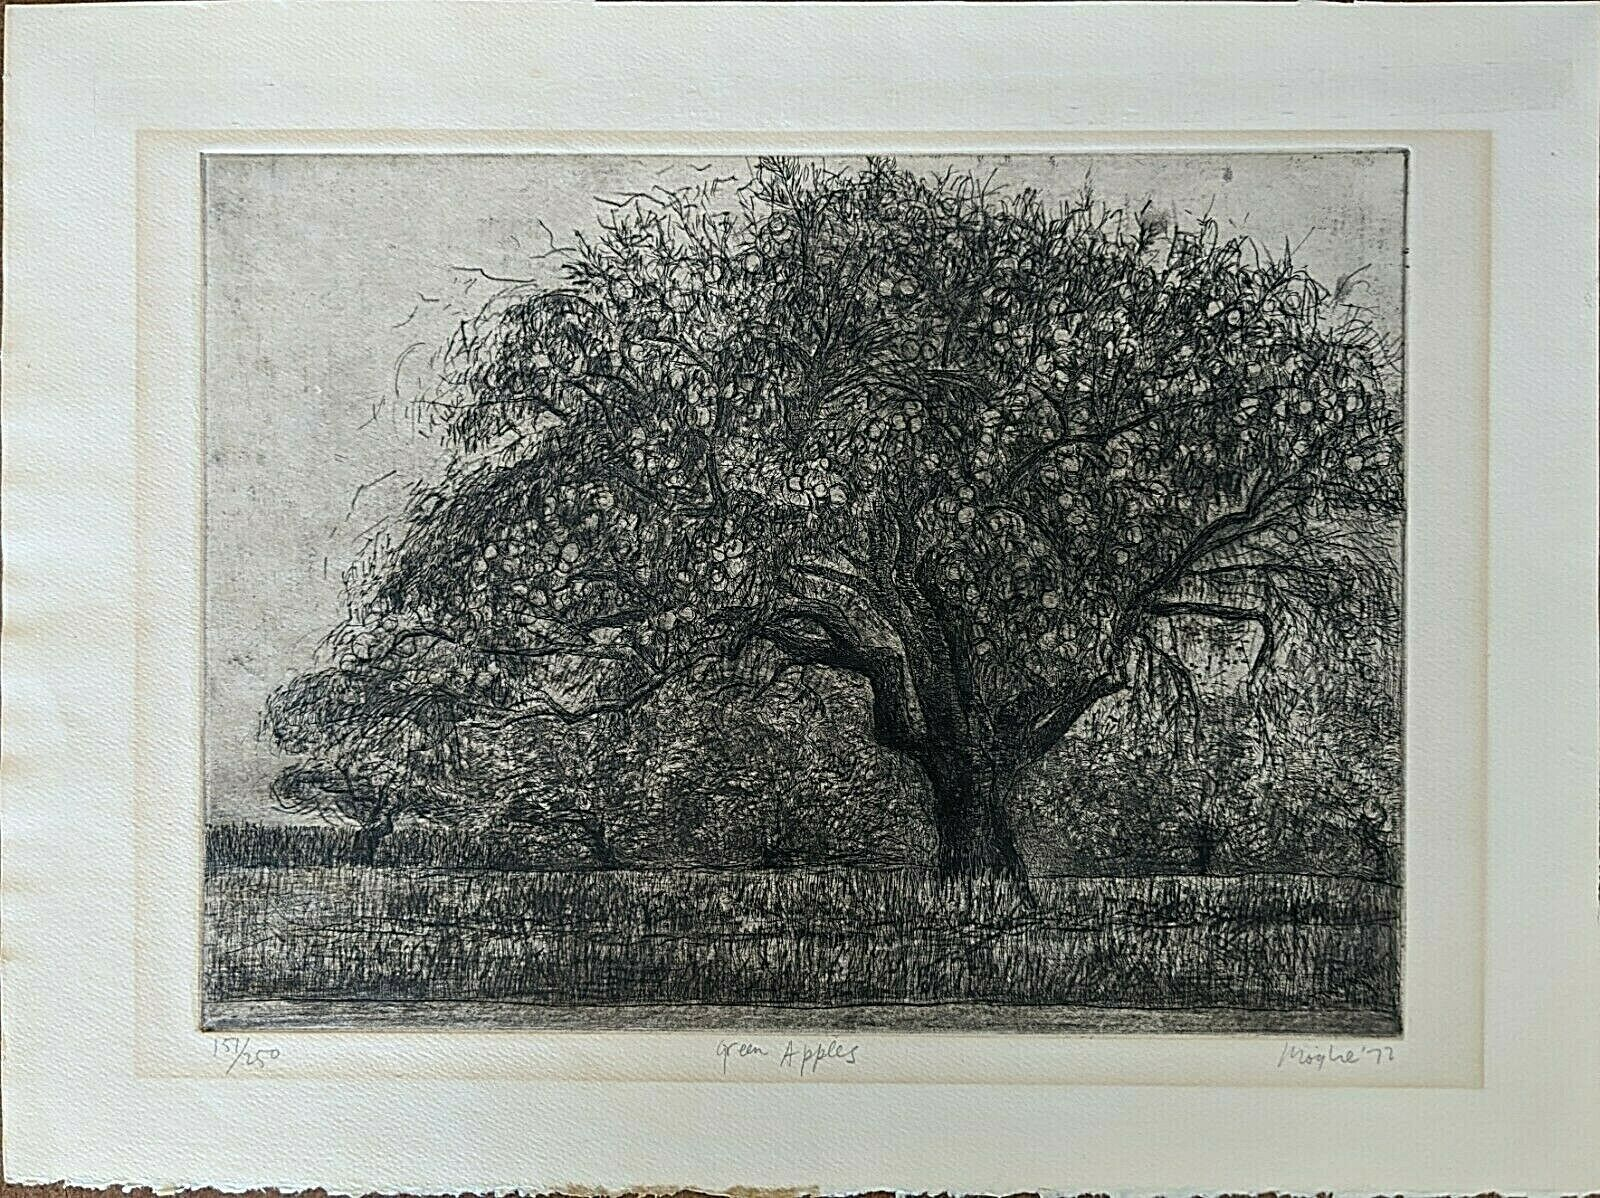 """Image 1 - Moishe Smith Etching, """"Green Apples"""" 1972, Pencil Signed"""